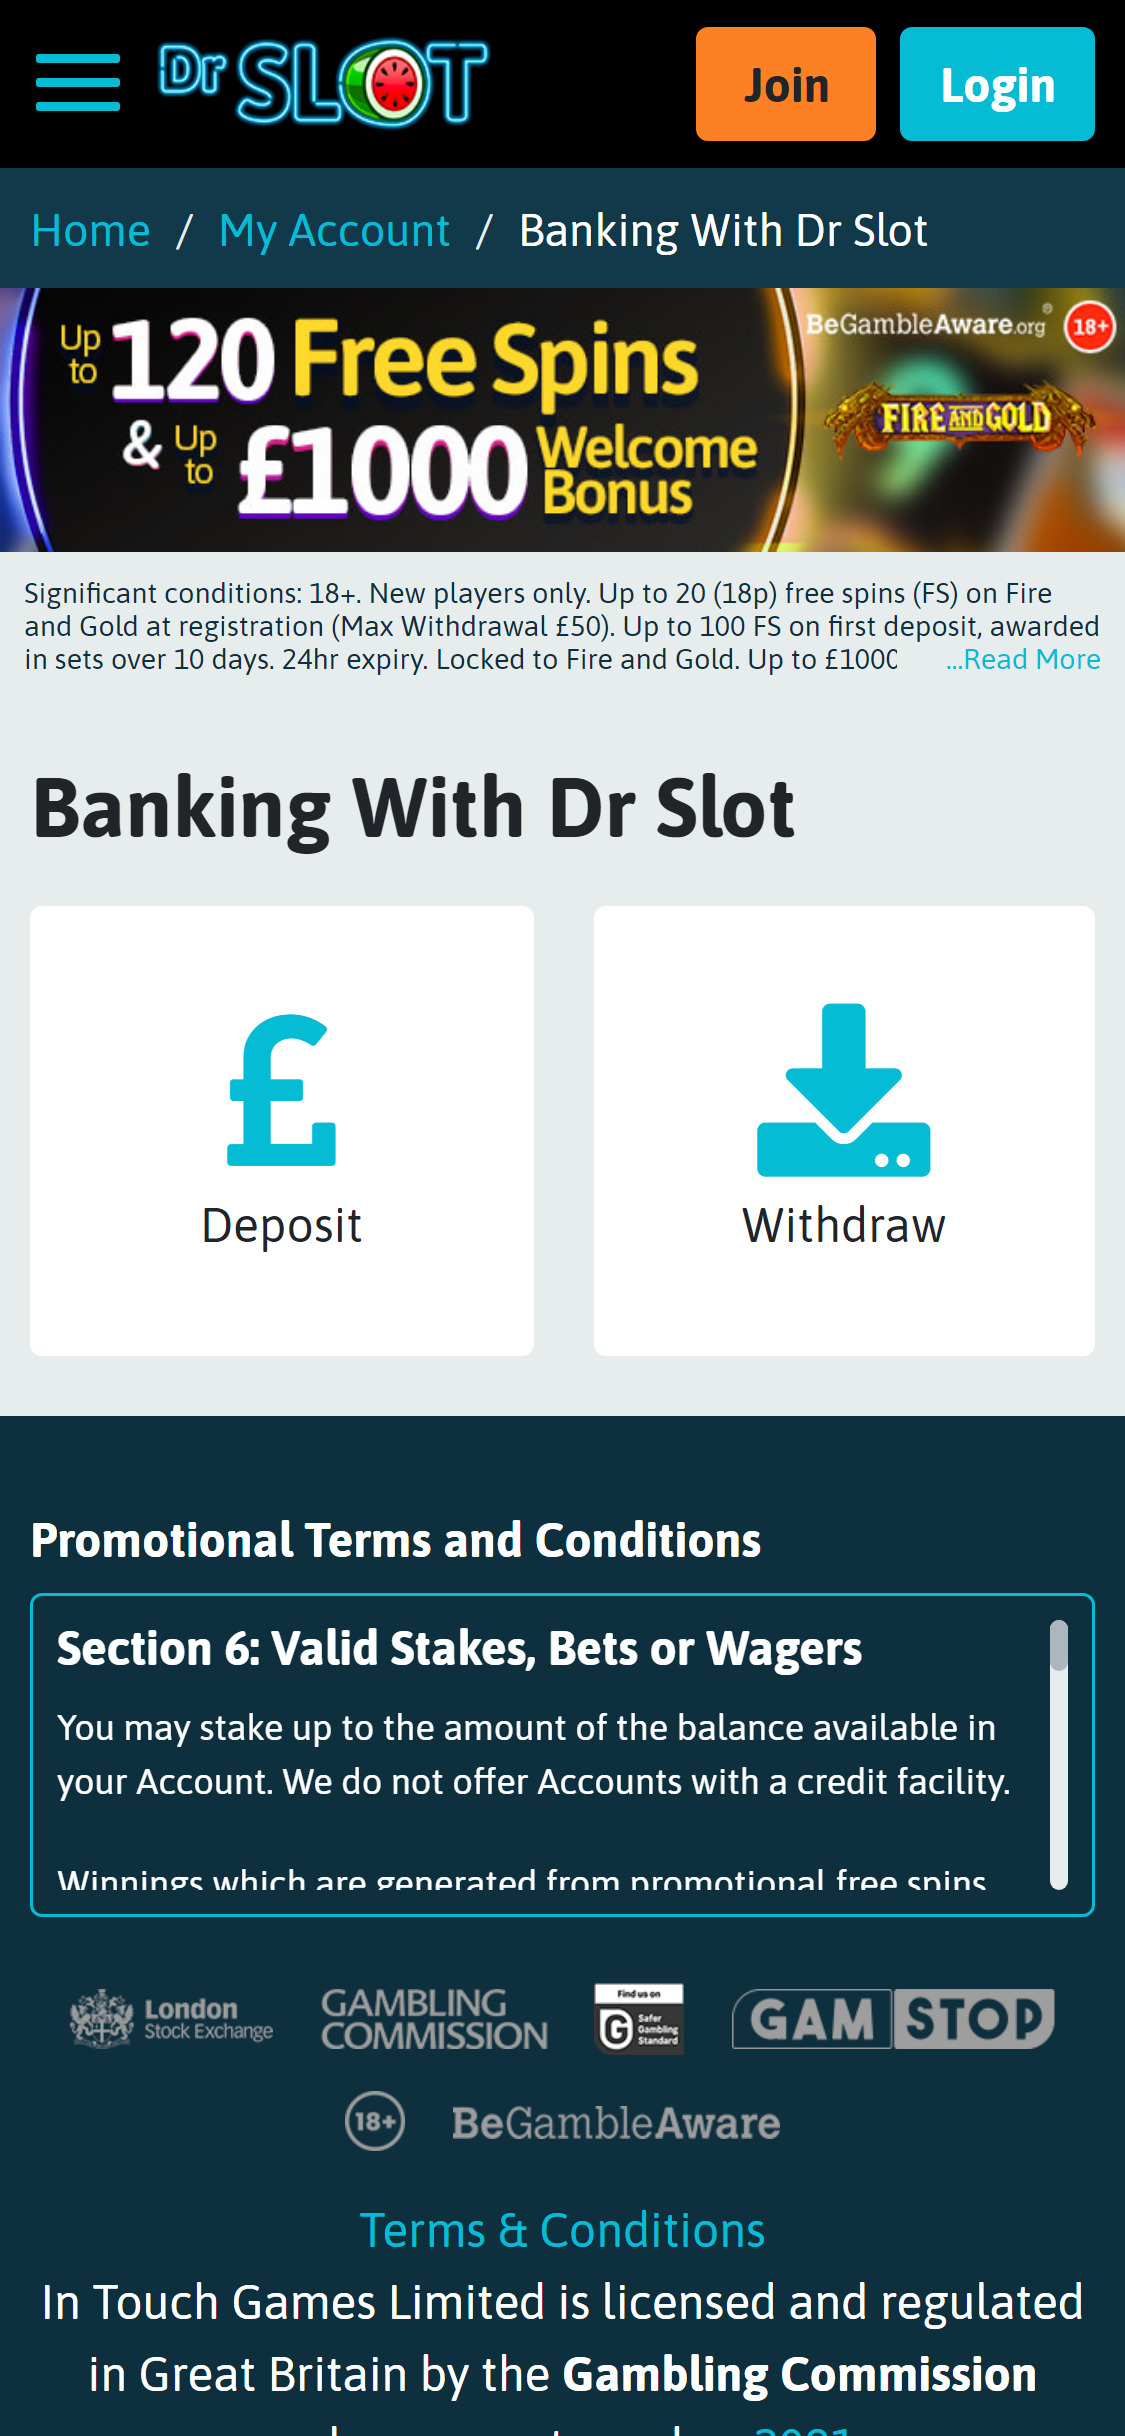 Dr Slot Casino Payment Methods